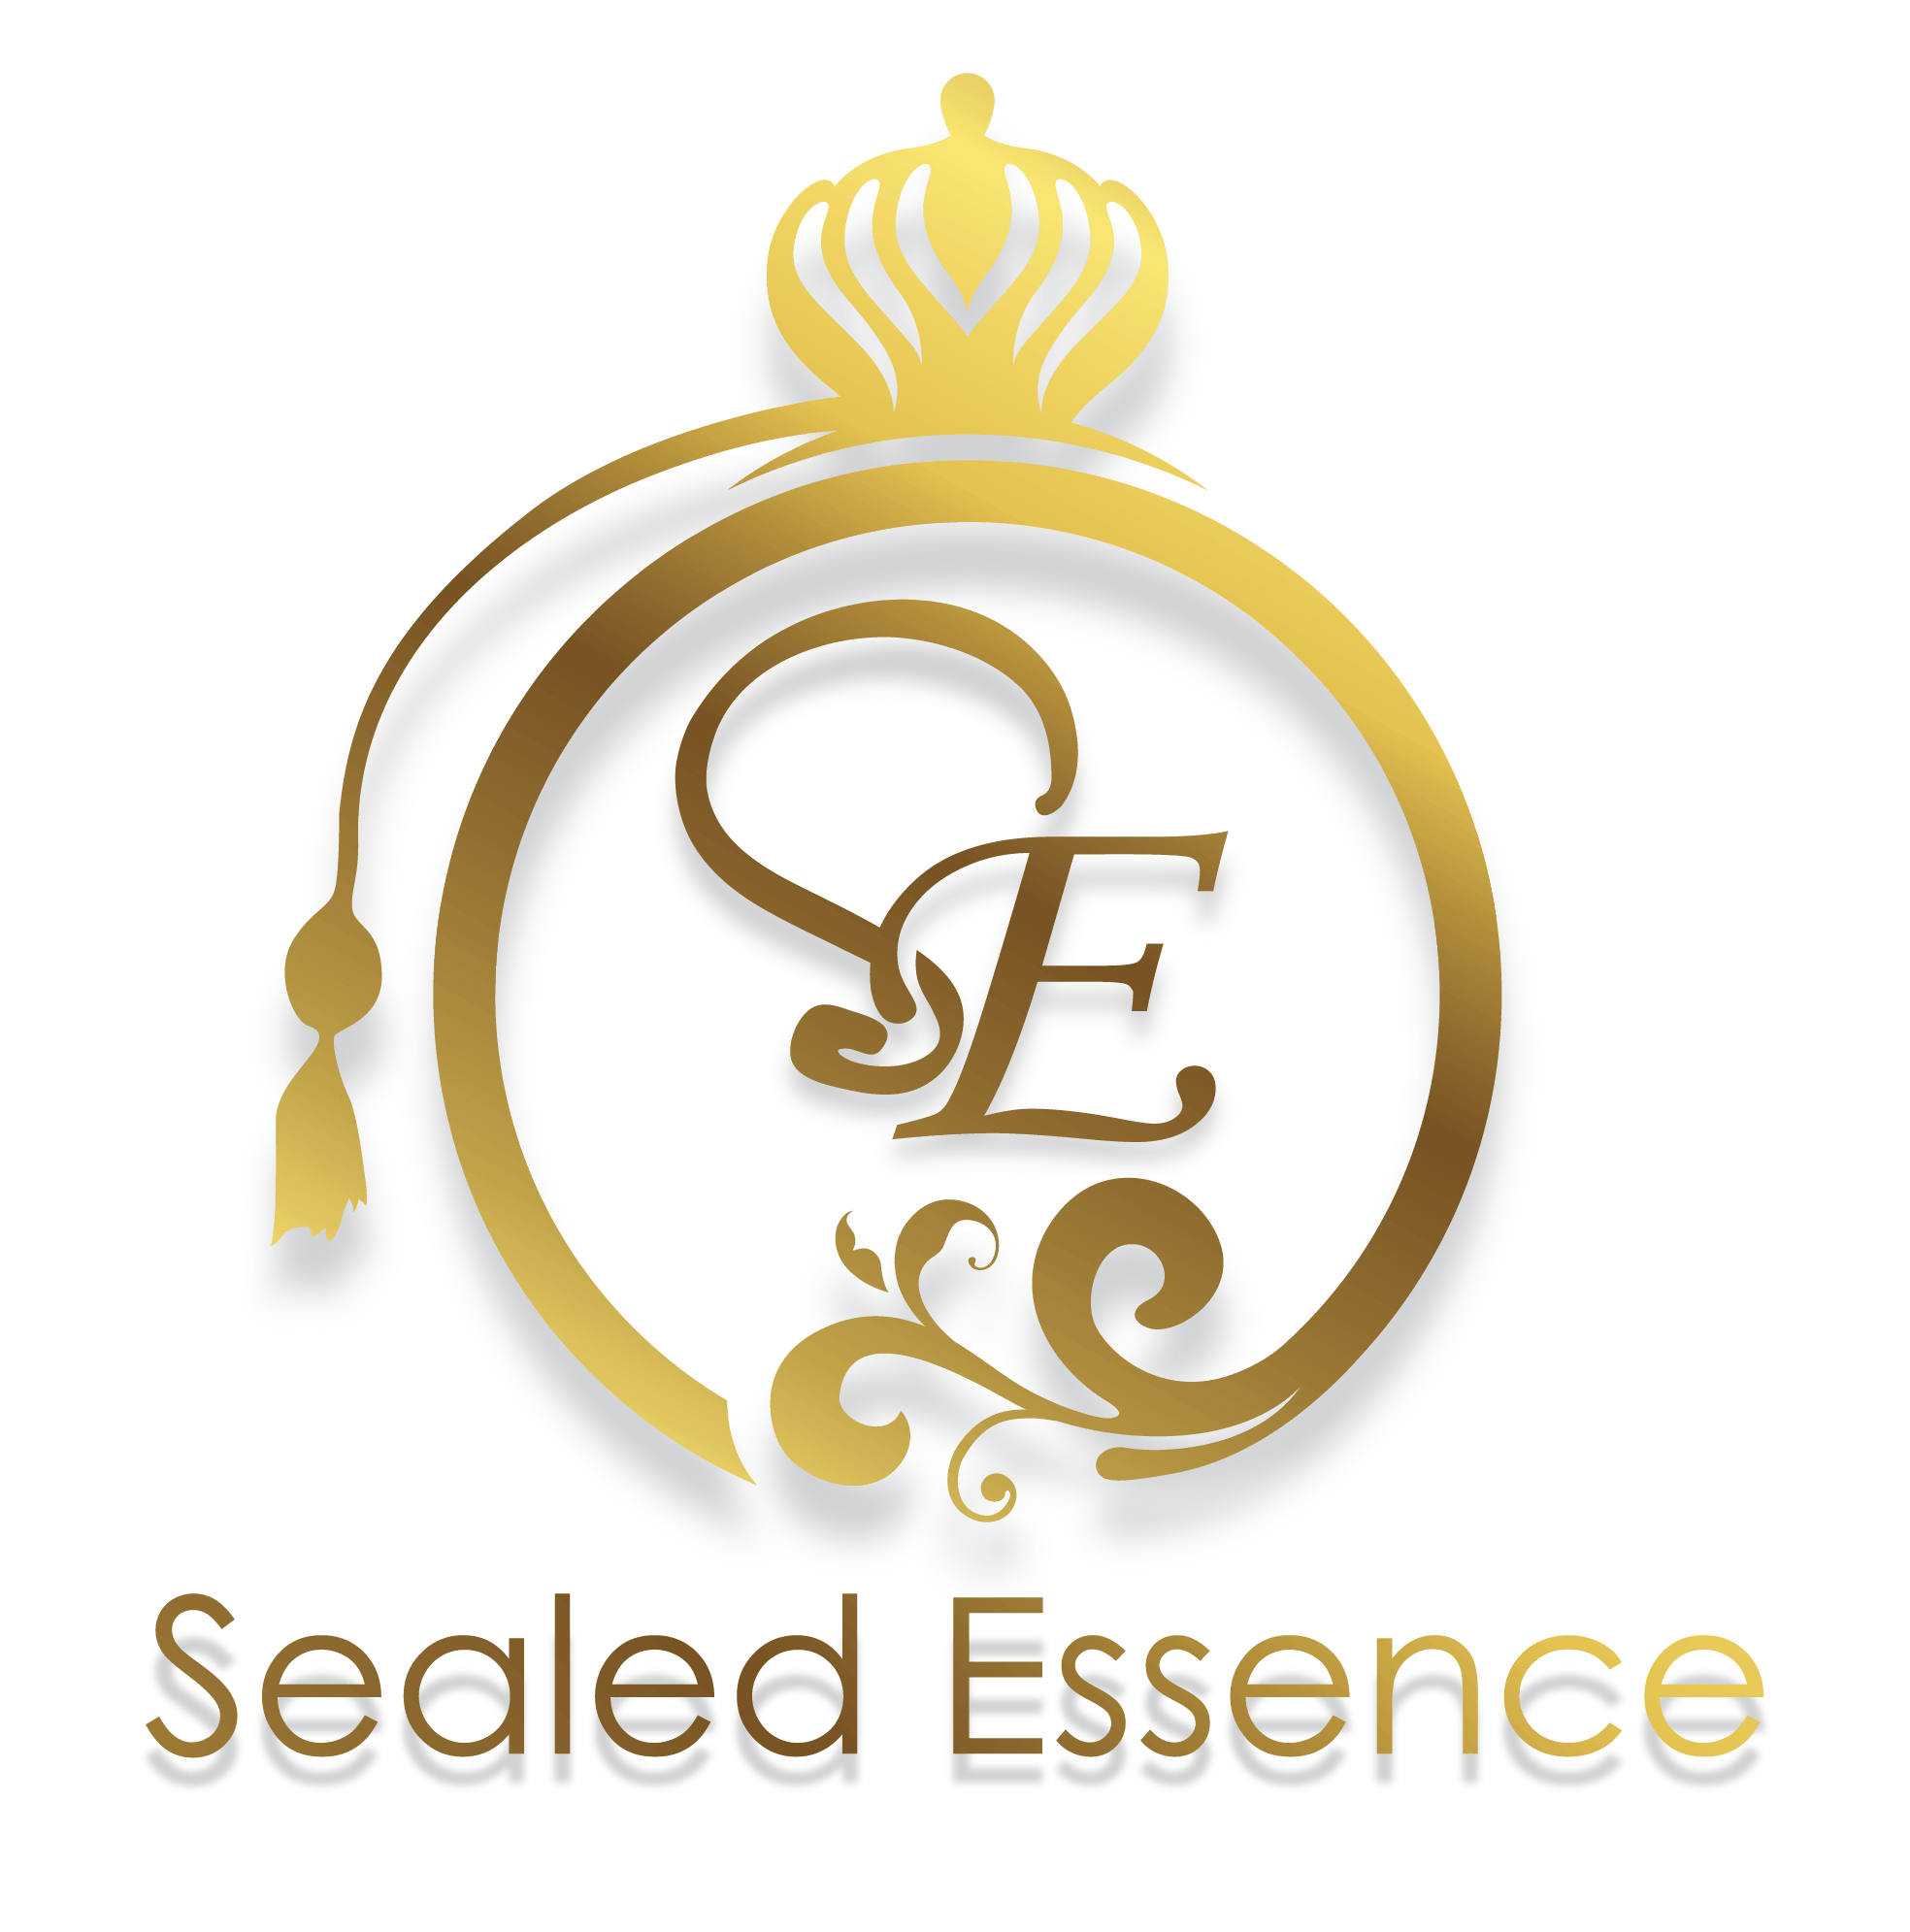 Sealed Essence